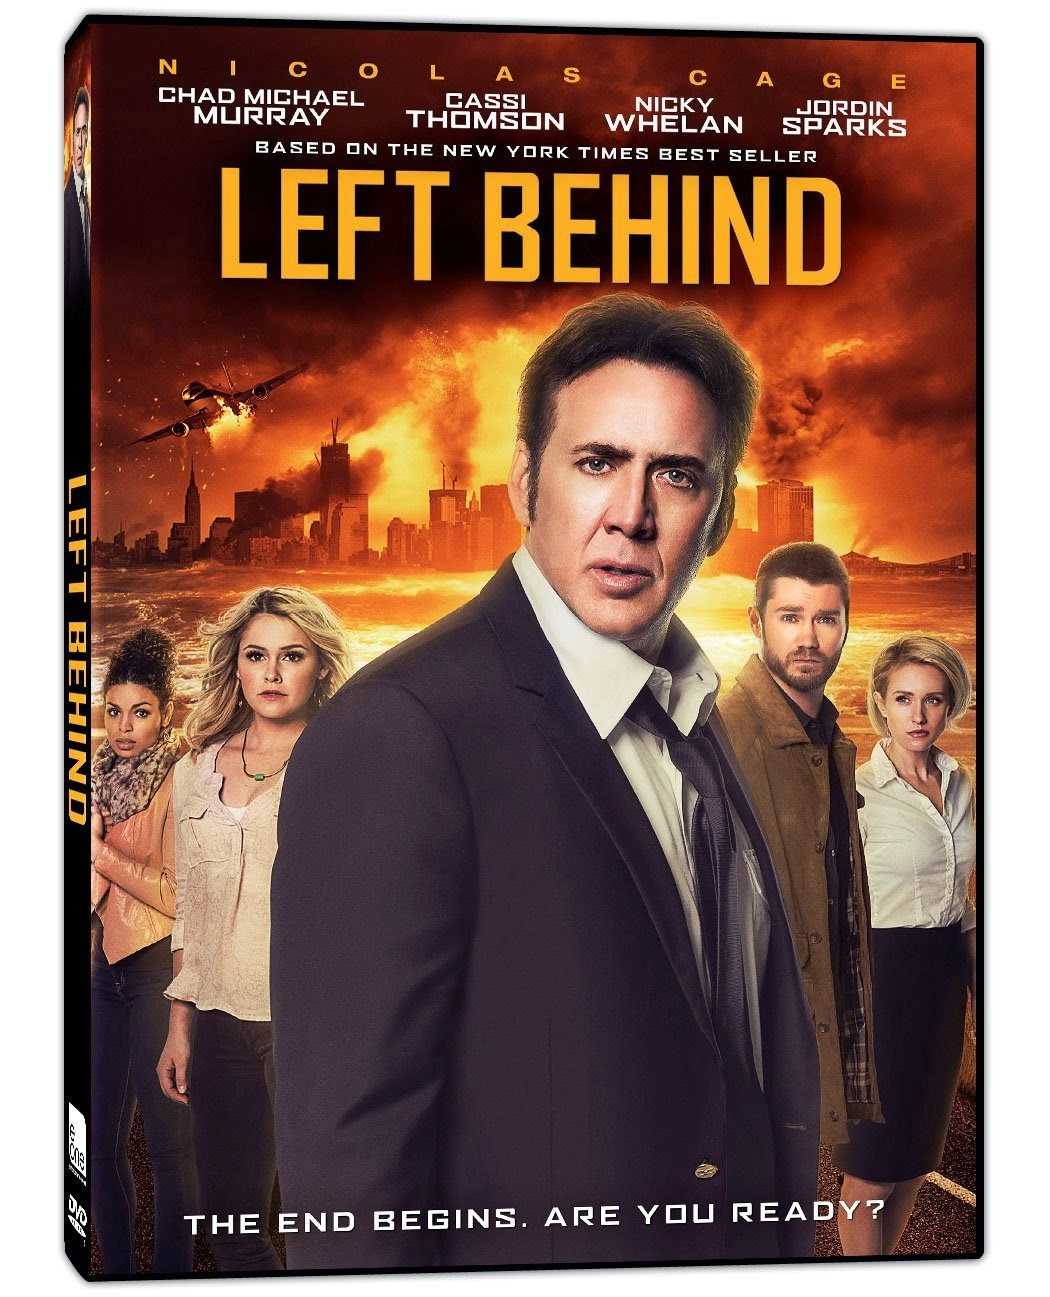 Coperta filmului Left Behind, 2014, preluata de pe amazon.com